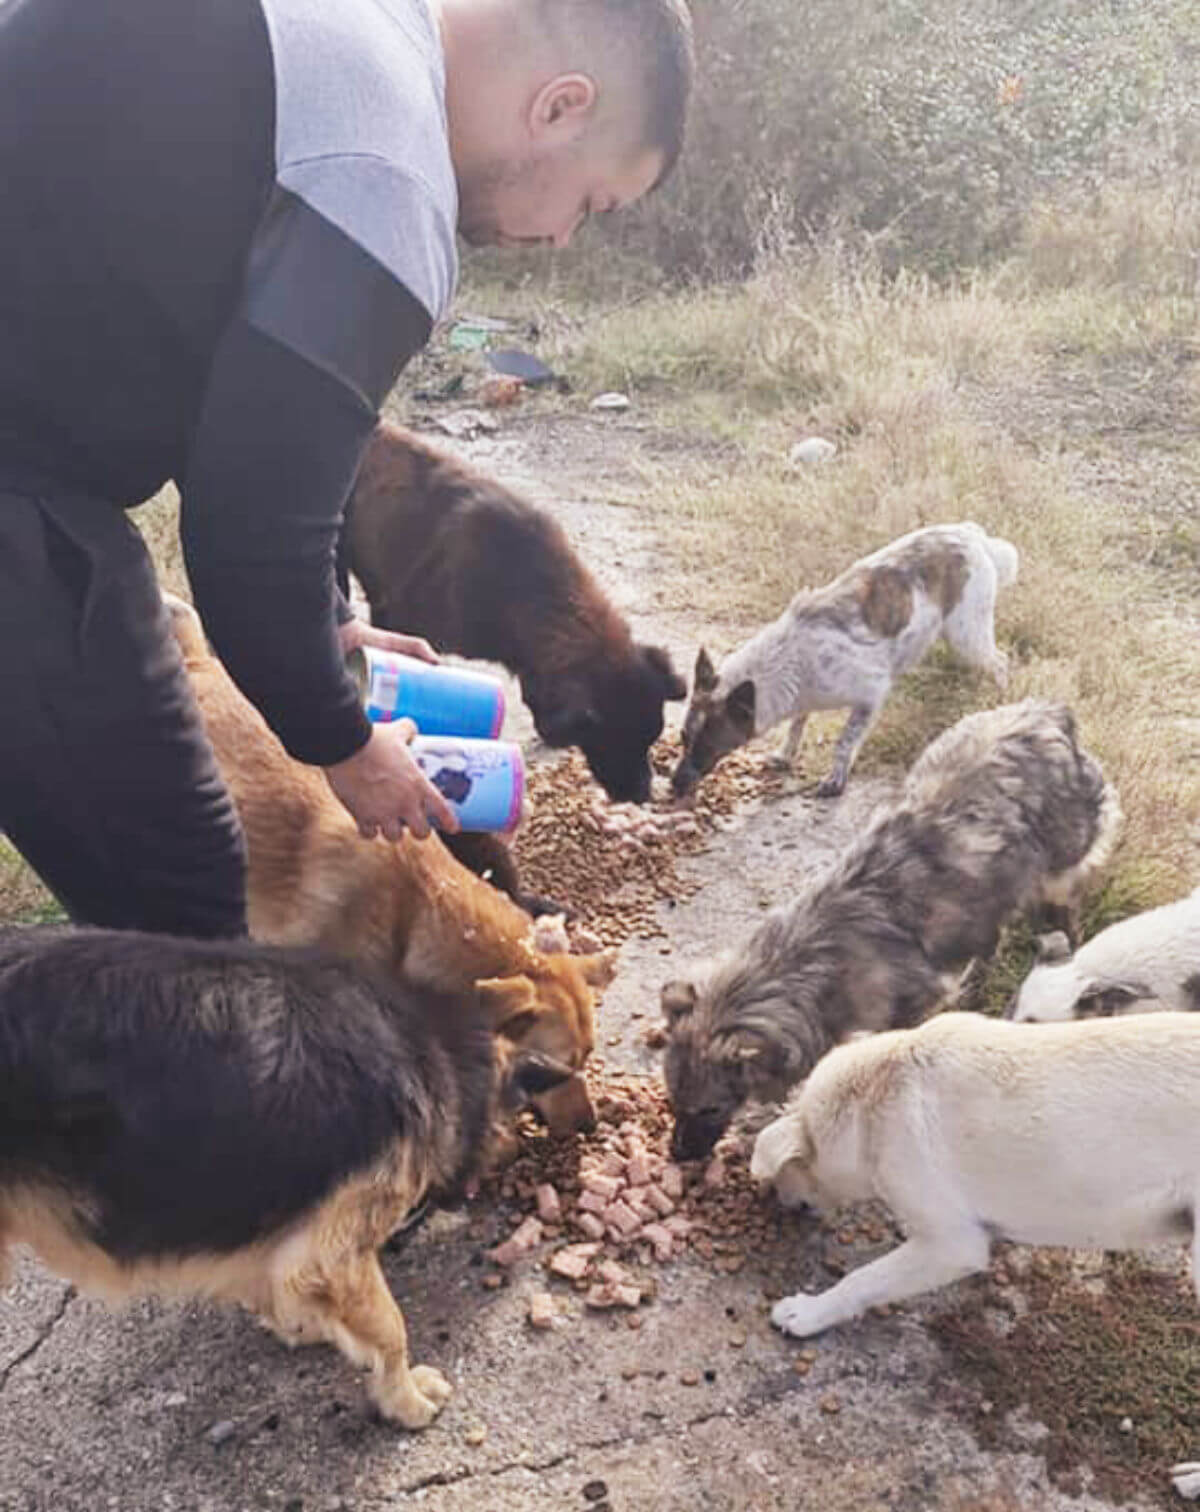 Feeding dogs in the field